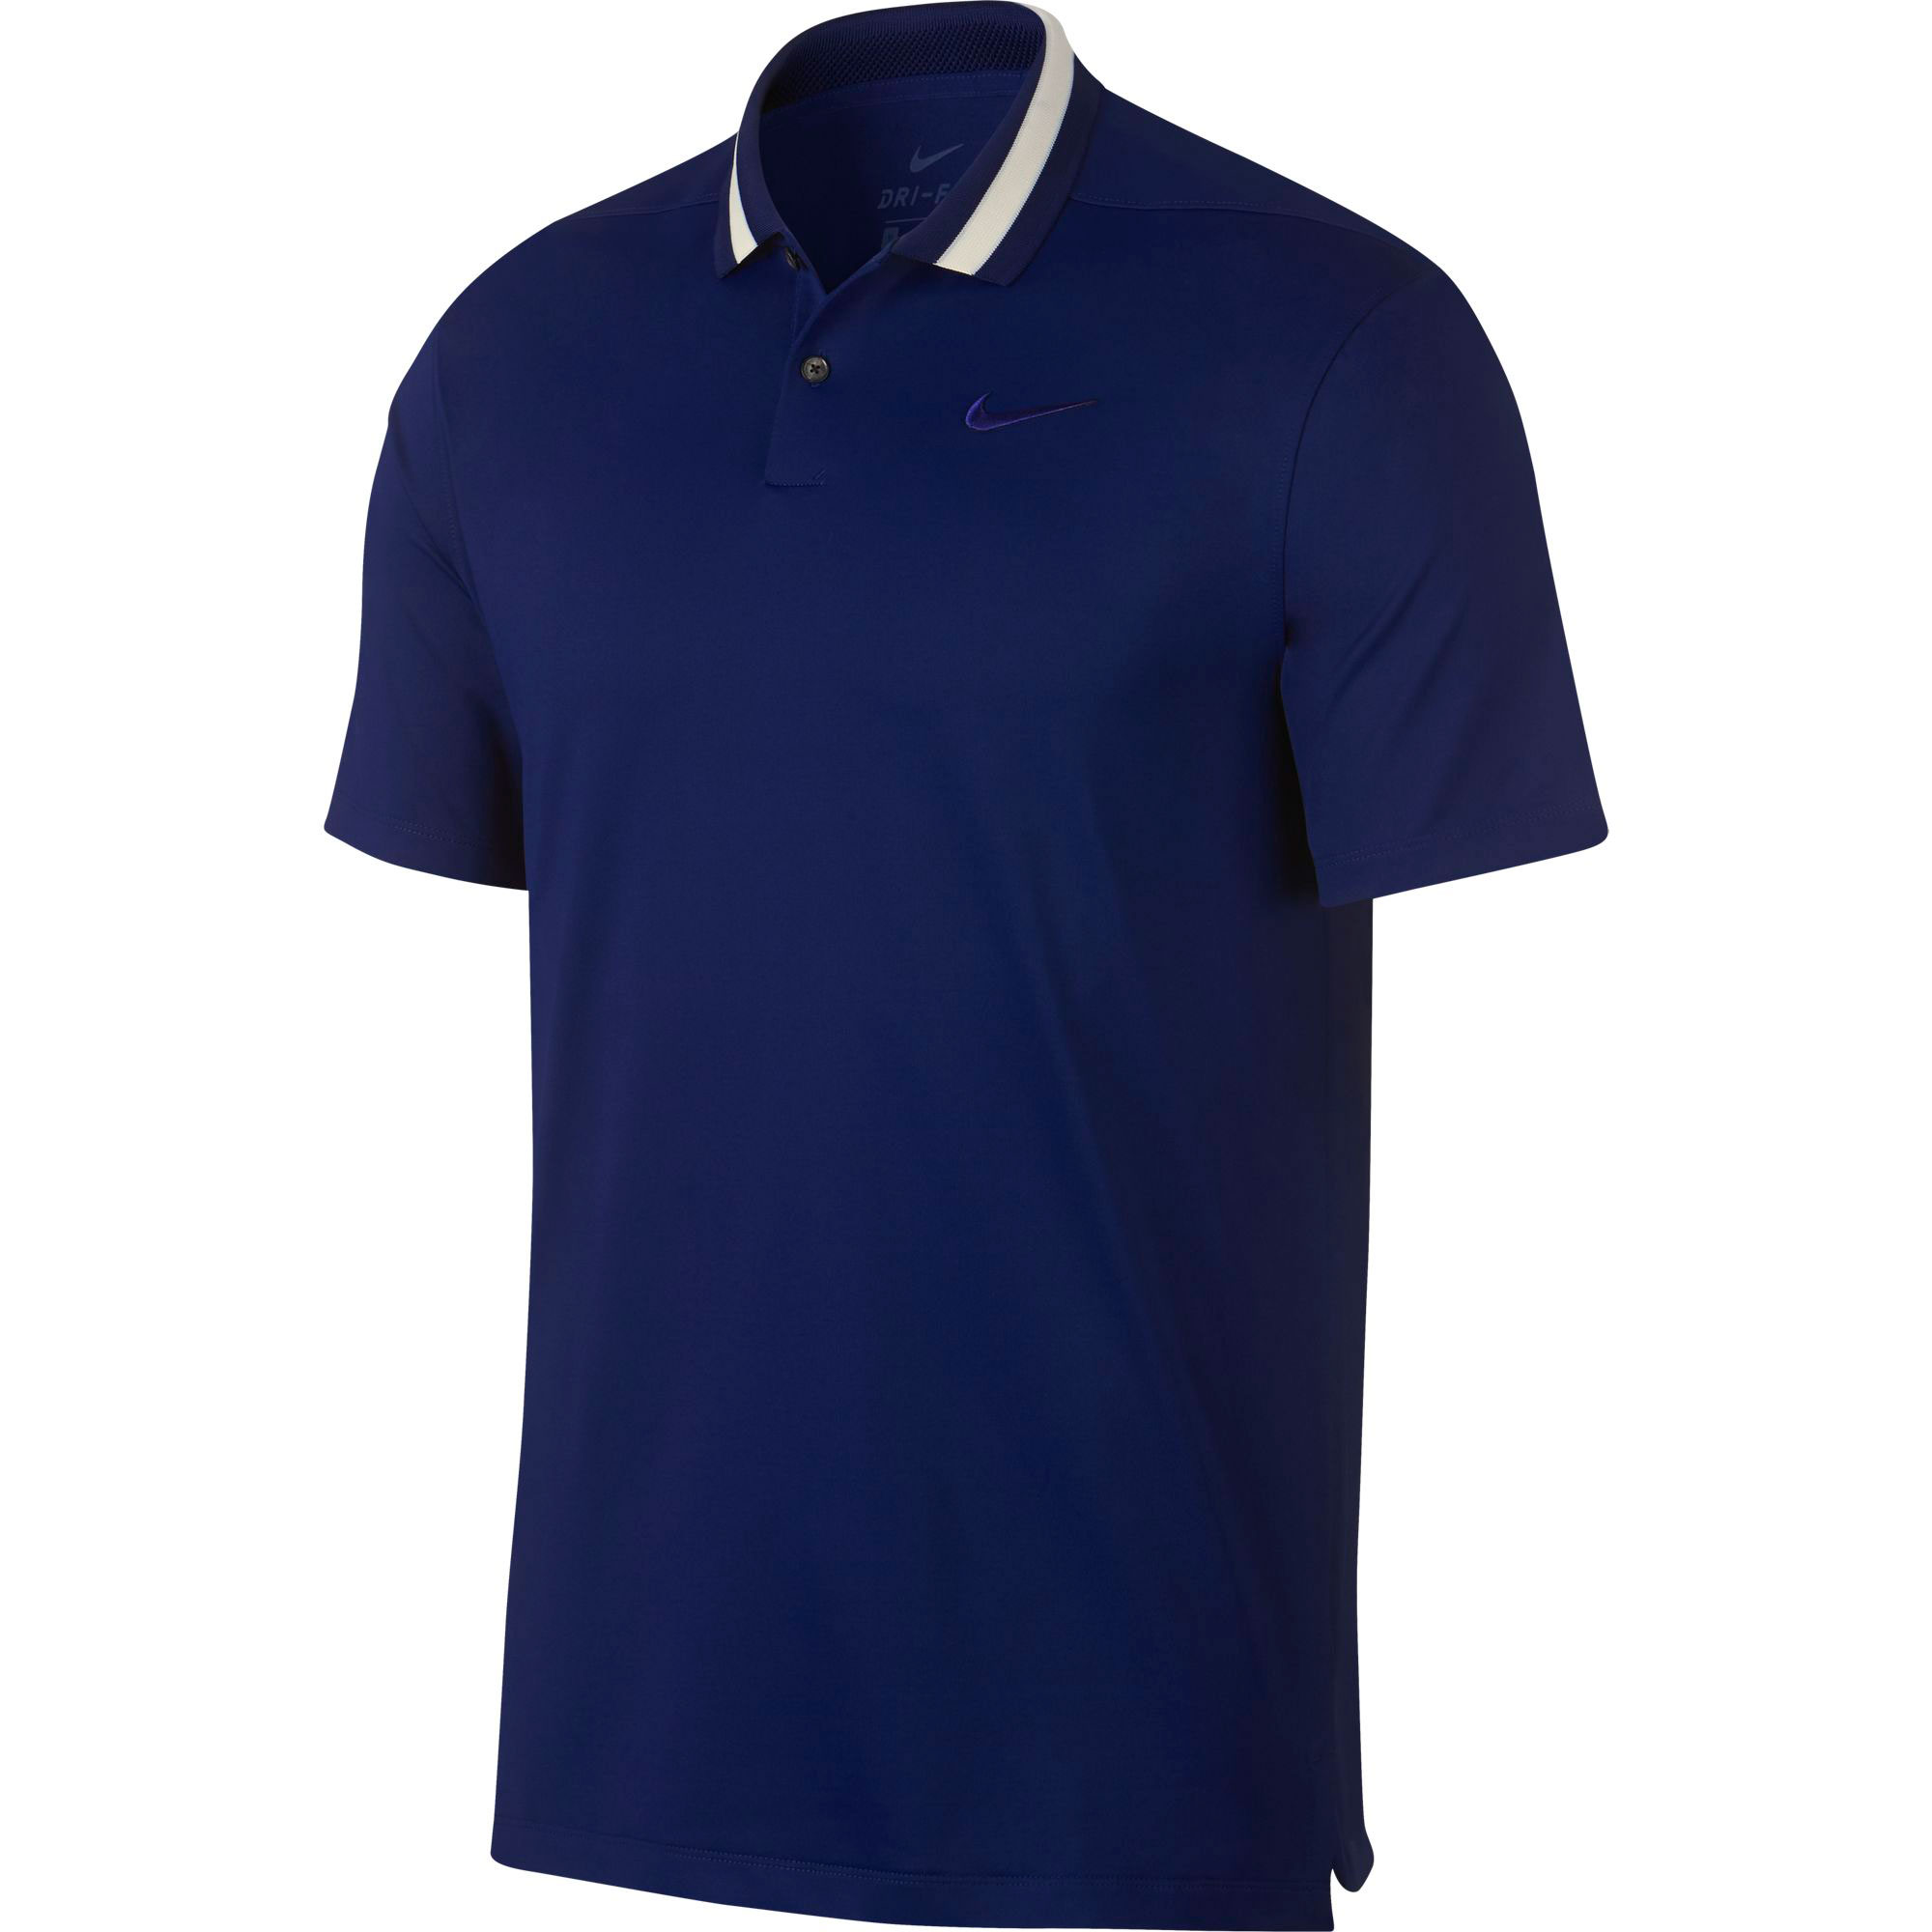 744847ca44c Nike Golf Dri-FIT Vapor Polo Shirt from american golf